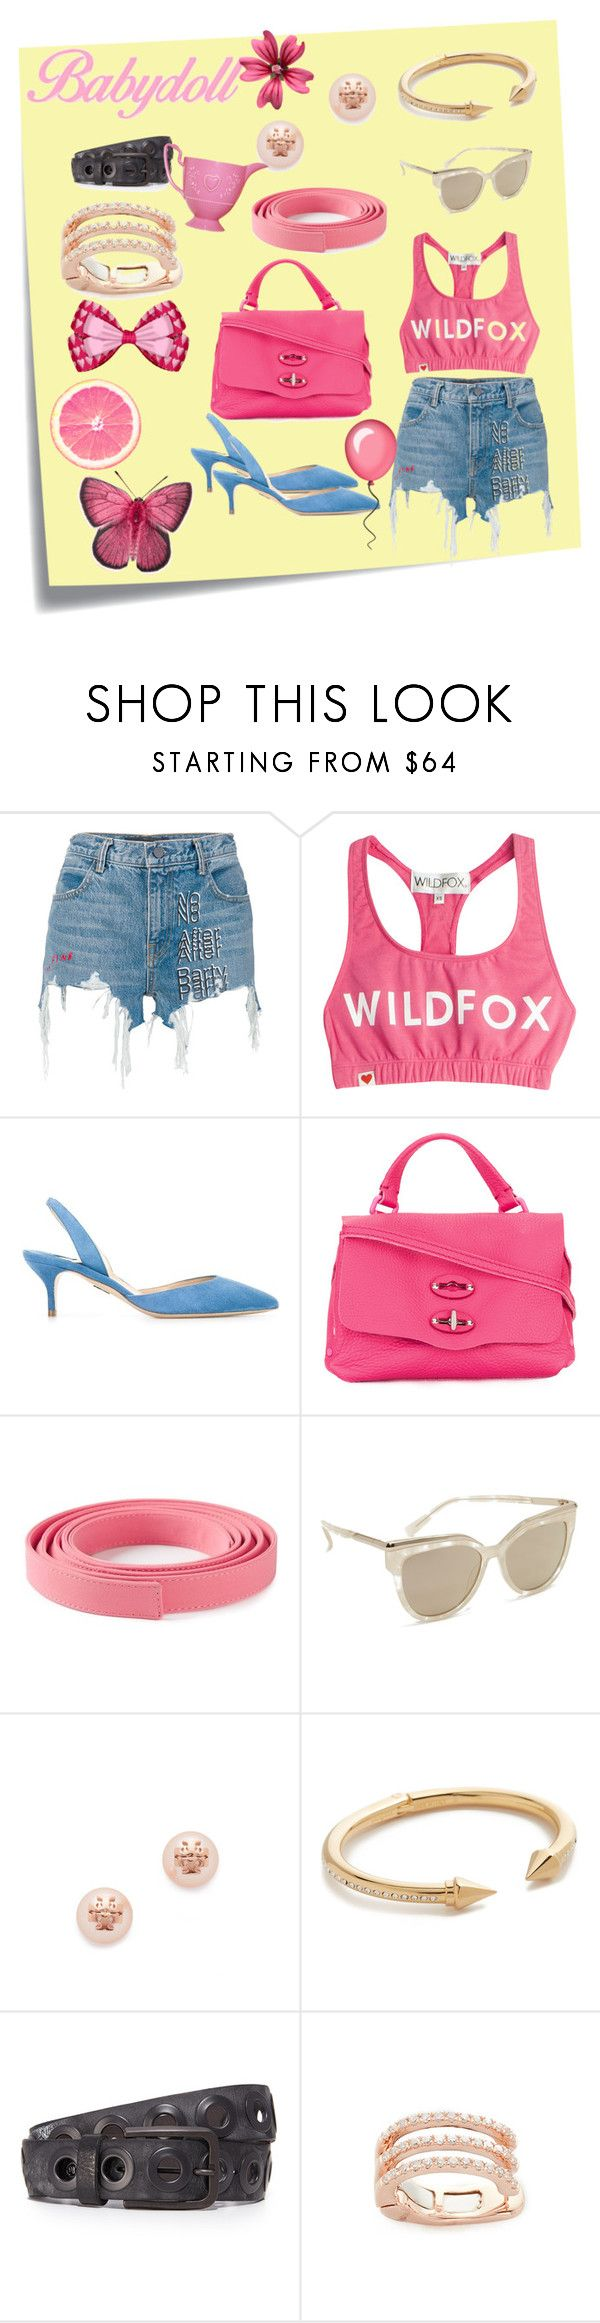 """""""Pink girl..."""" by jamuna-kaalla ❤ liked on Polyvore featuring Post-It, Alexander Wang, Wildfox, Paul Andrew, Zanellato, Ermanno Scervino, MCM, Tory Burch, Vita Fede and B. Belt"""